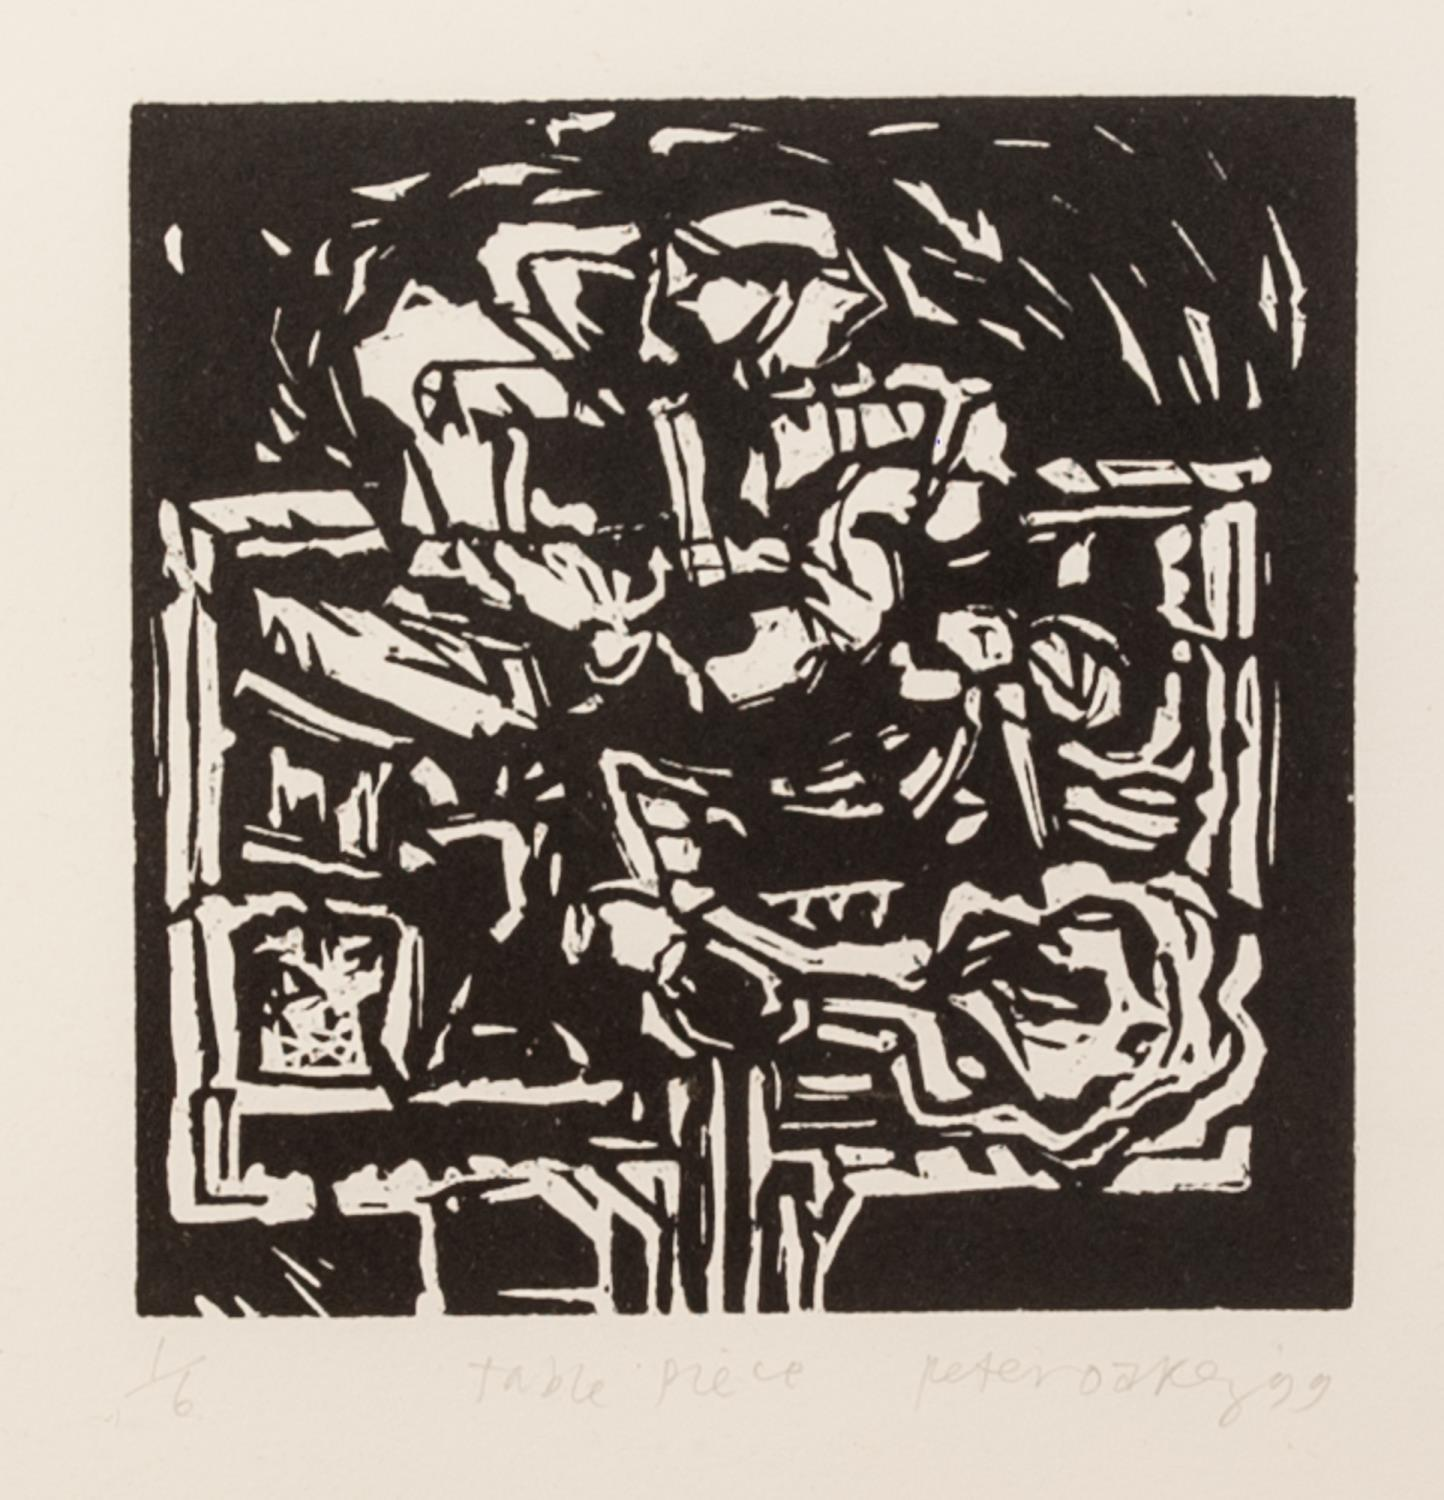 PETER OAKLEY (1935-2007) SEVEN ARTIST SIGNED LIMITED EDITION BLACK AND WHITE WOODCUTS OF SIMILAR - Image 5 of 8